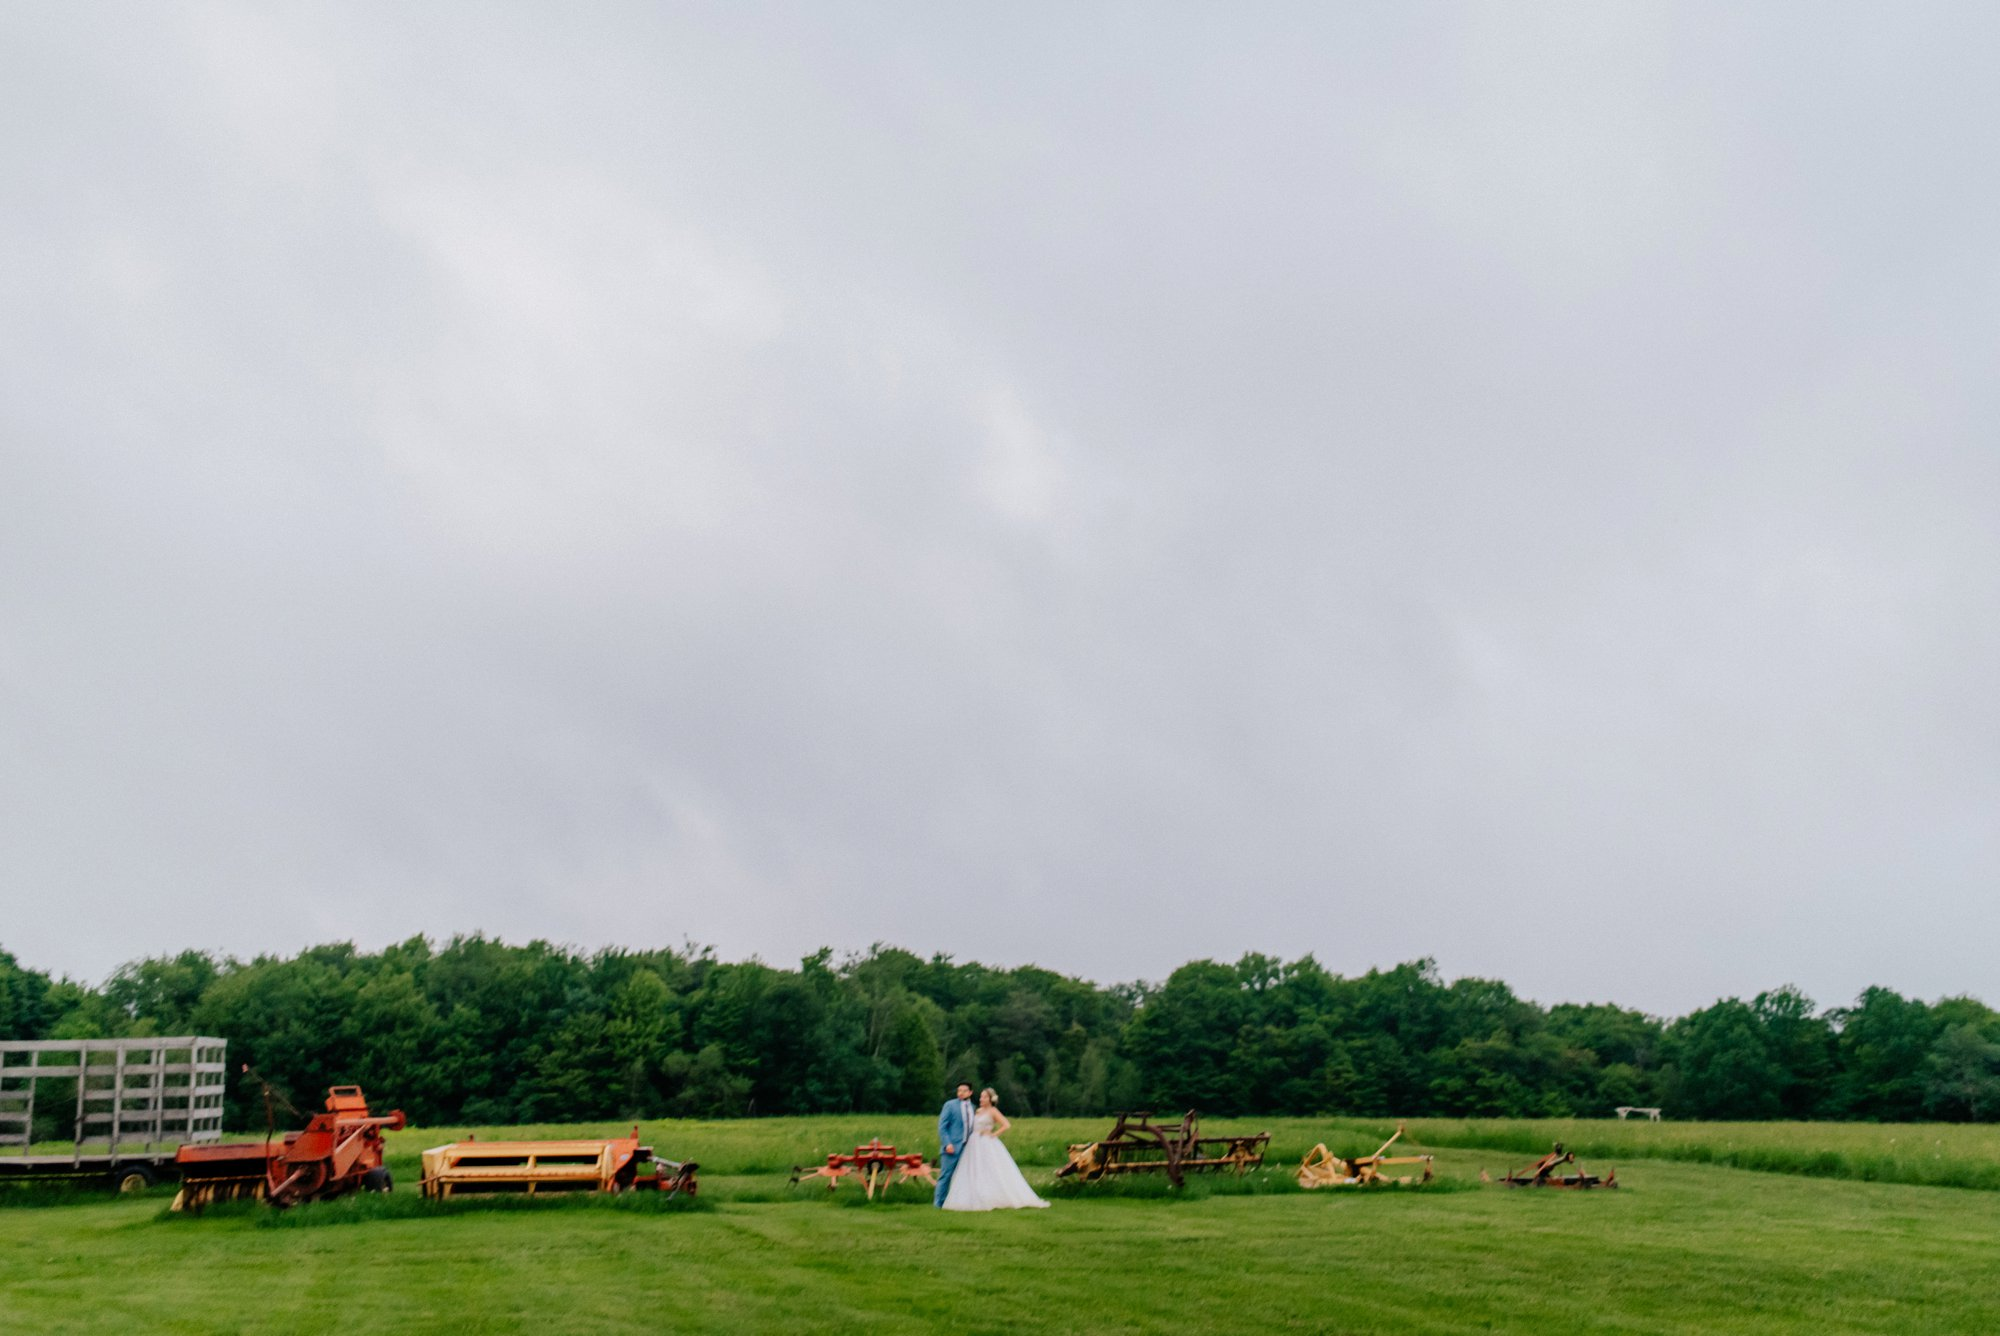 Fiddle Lake Farm Philadelphia Pennsylvania Misty Rustic Wedding with Lush Florals Farm equipment